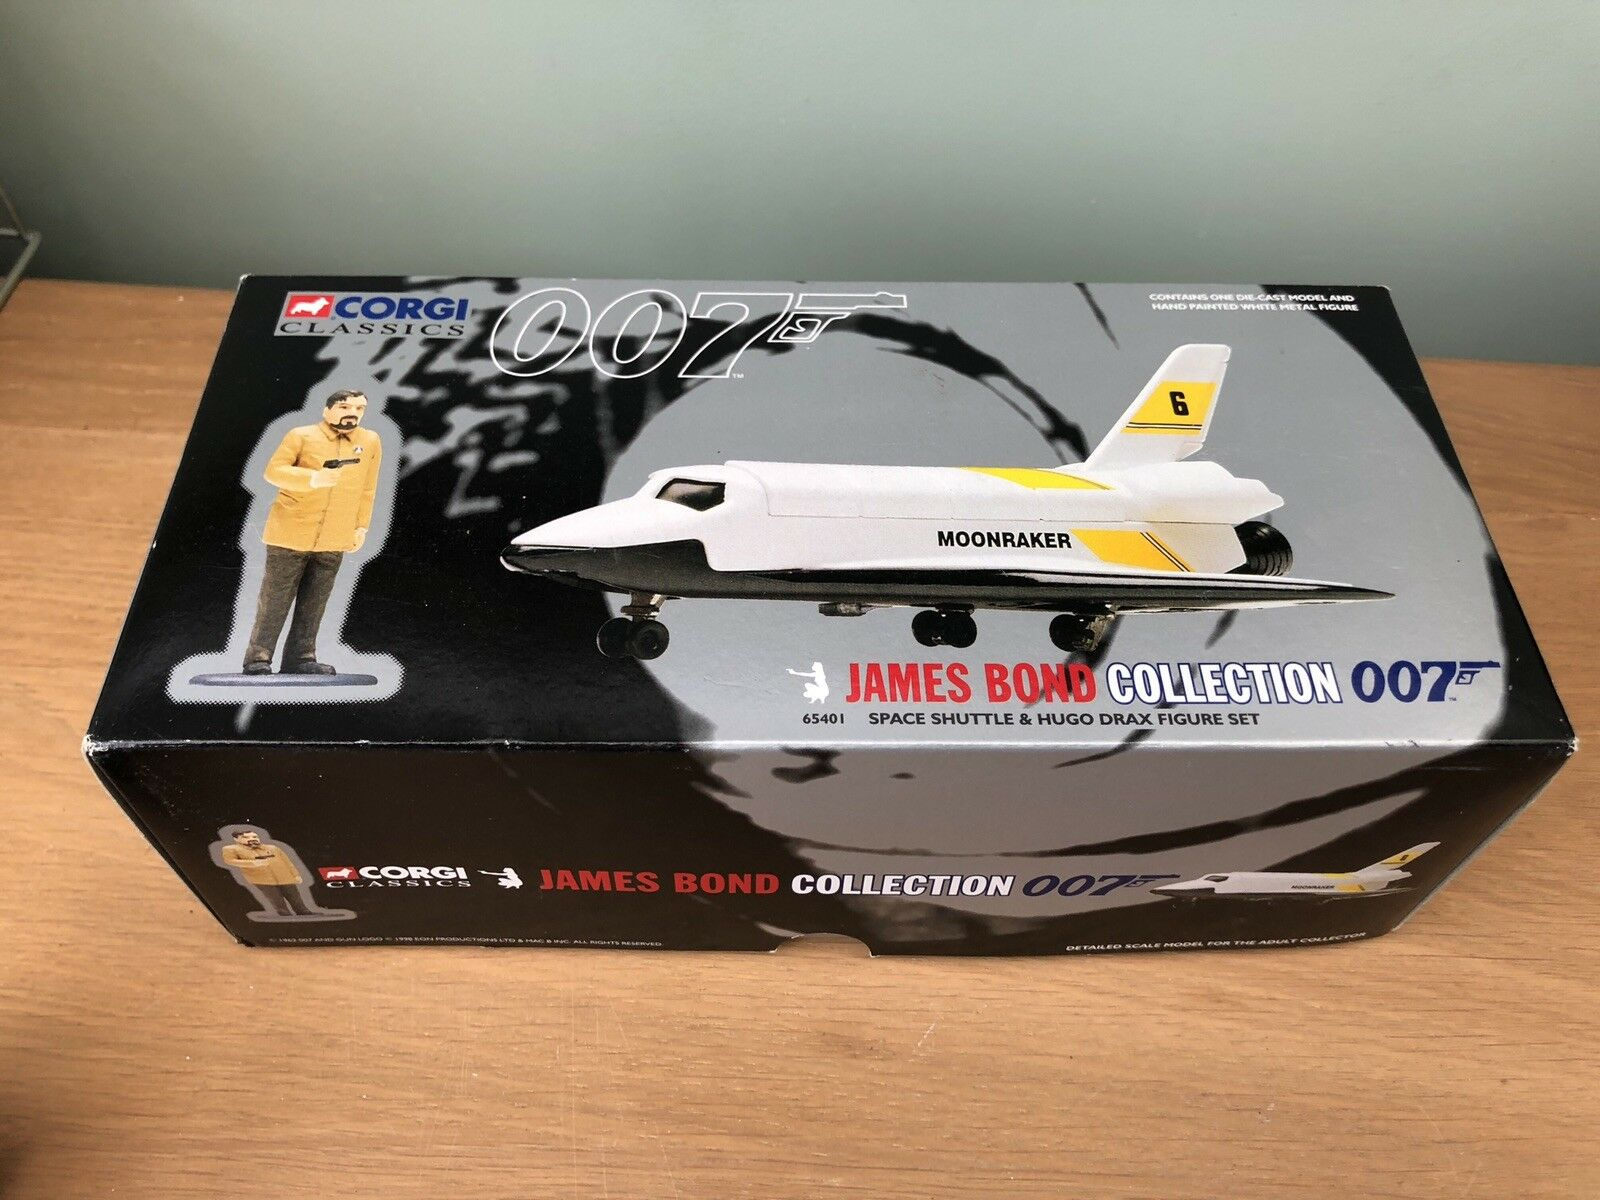 Corgi Classic James Bond Moonraker